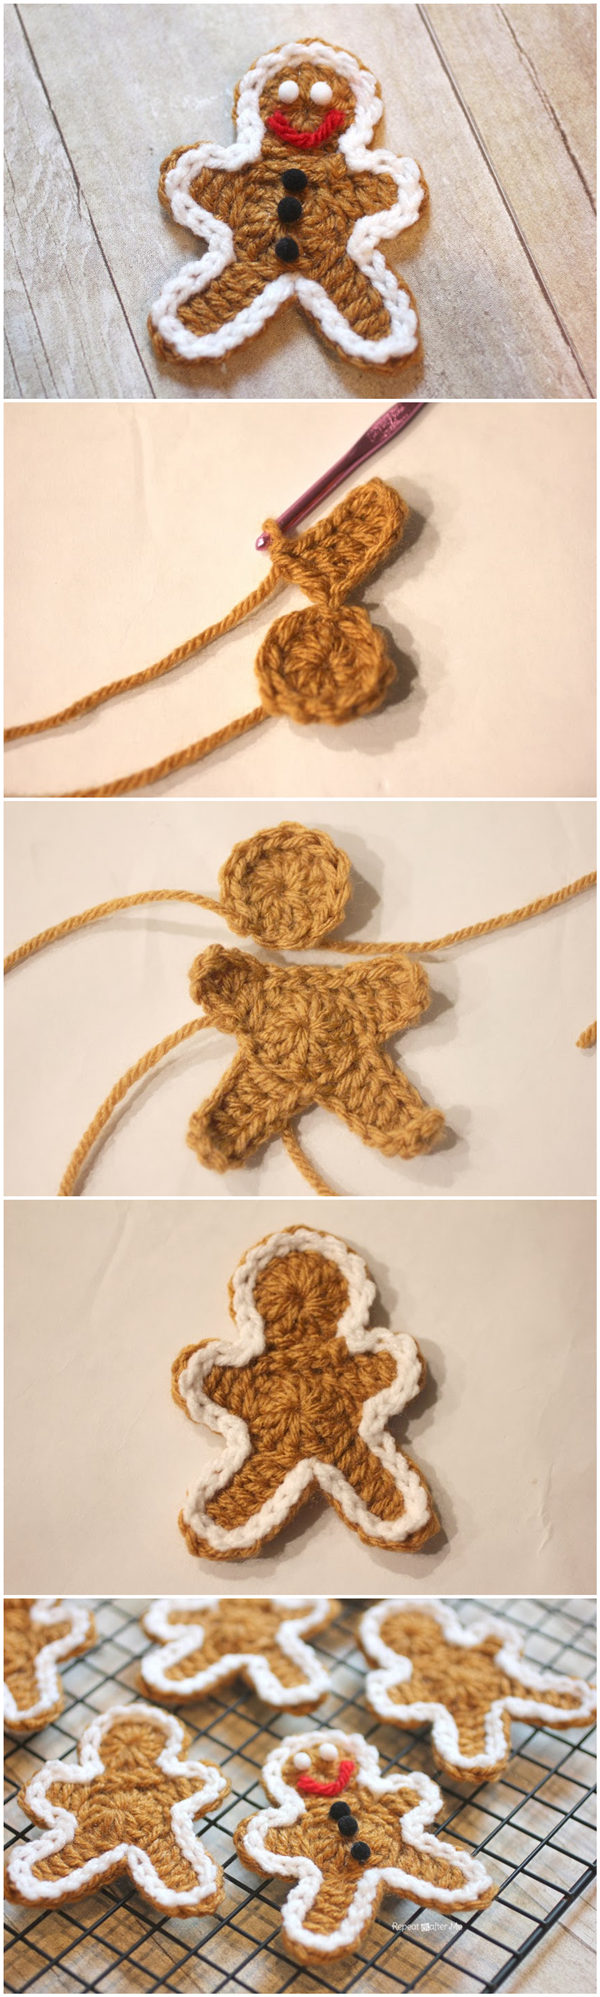 Crocheted Gingerbread Man Cookie Pattern